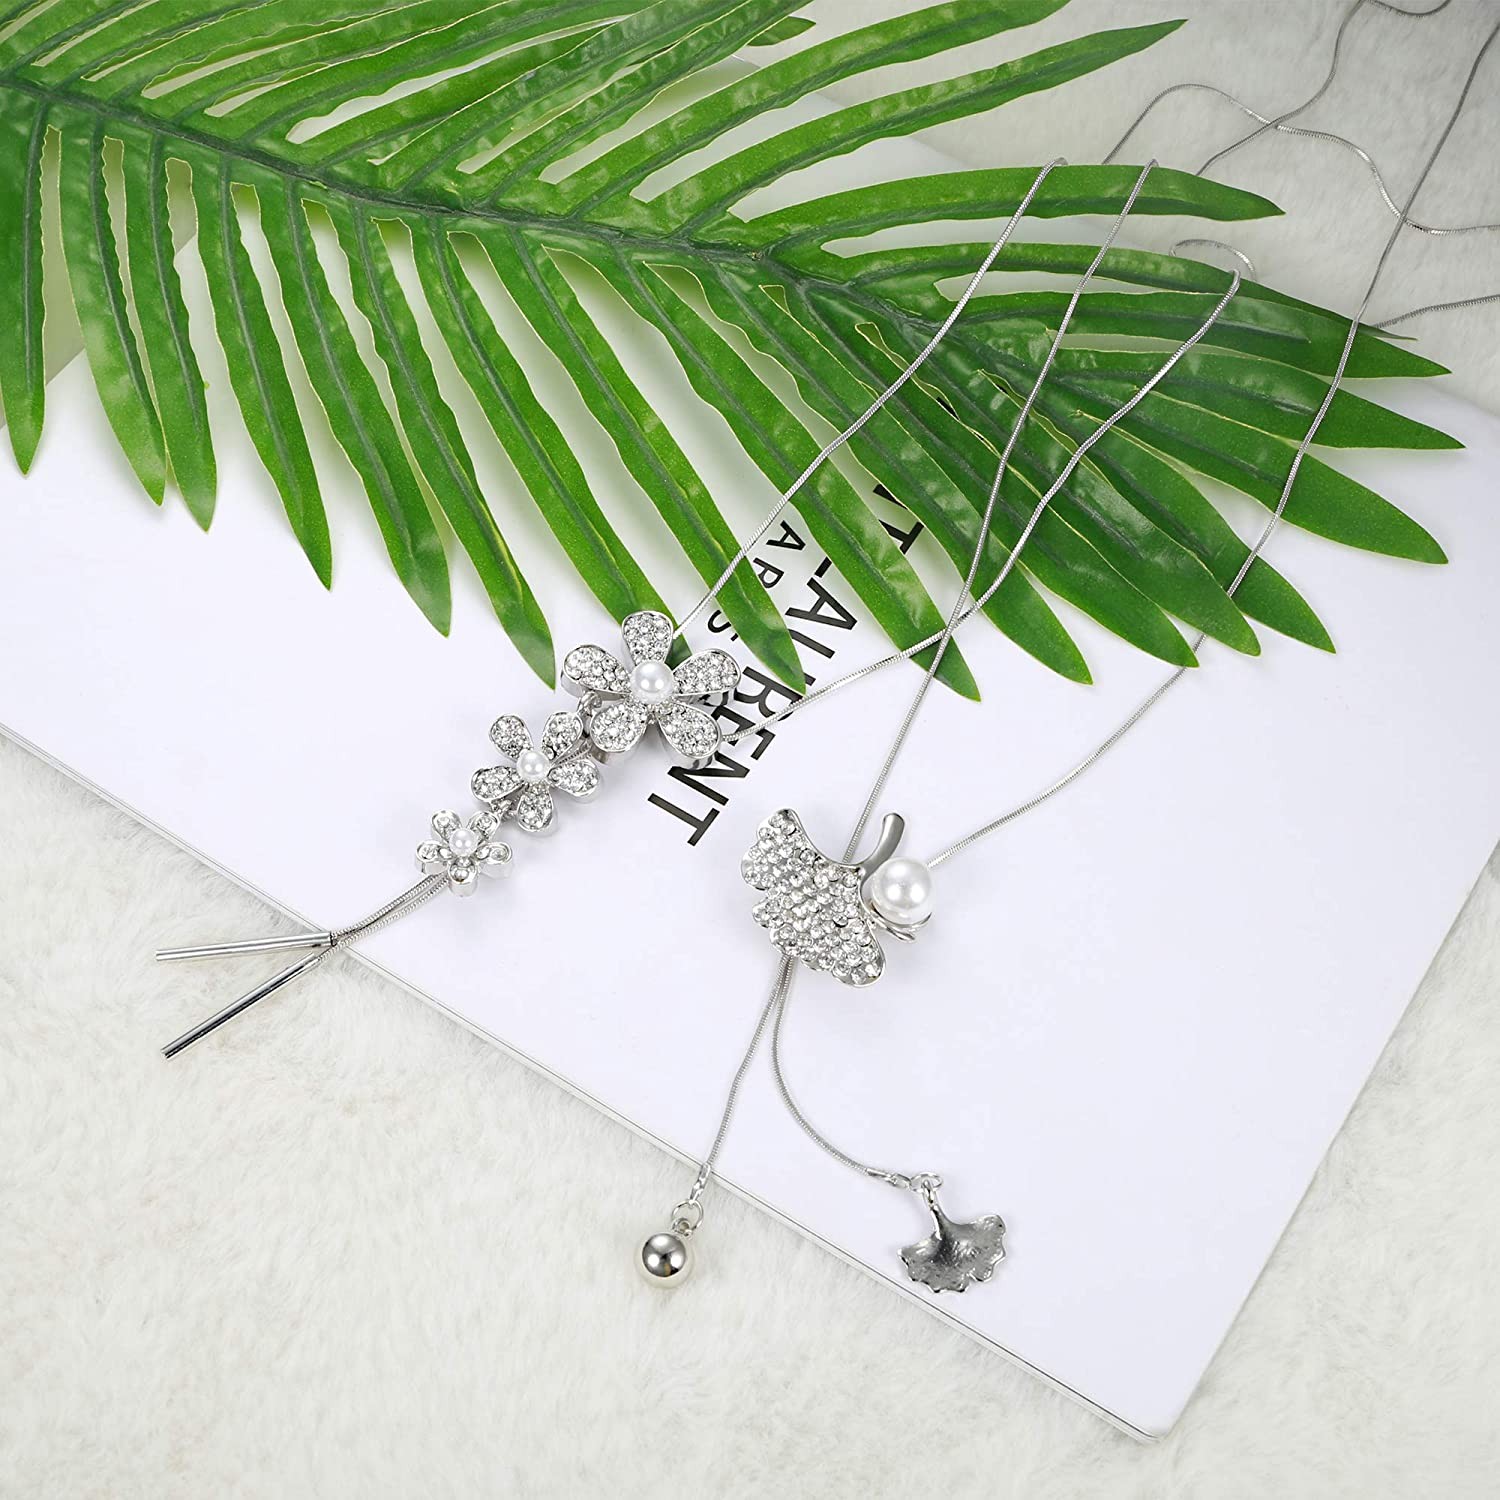 LOYALLOOK 6PCS Crystal Flowers Long Pendant Necklace Set Leaf Tassel Pearl Y Strands Sweater Necklace Long Necklaces for Women